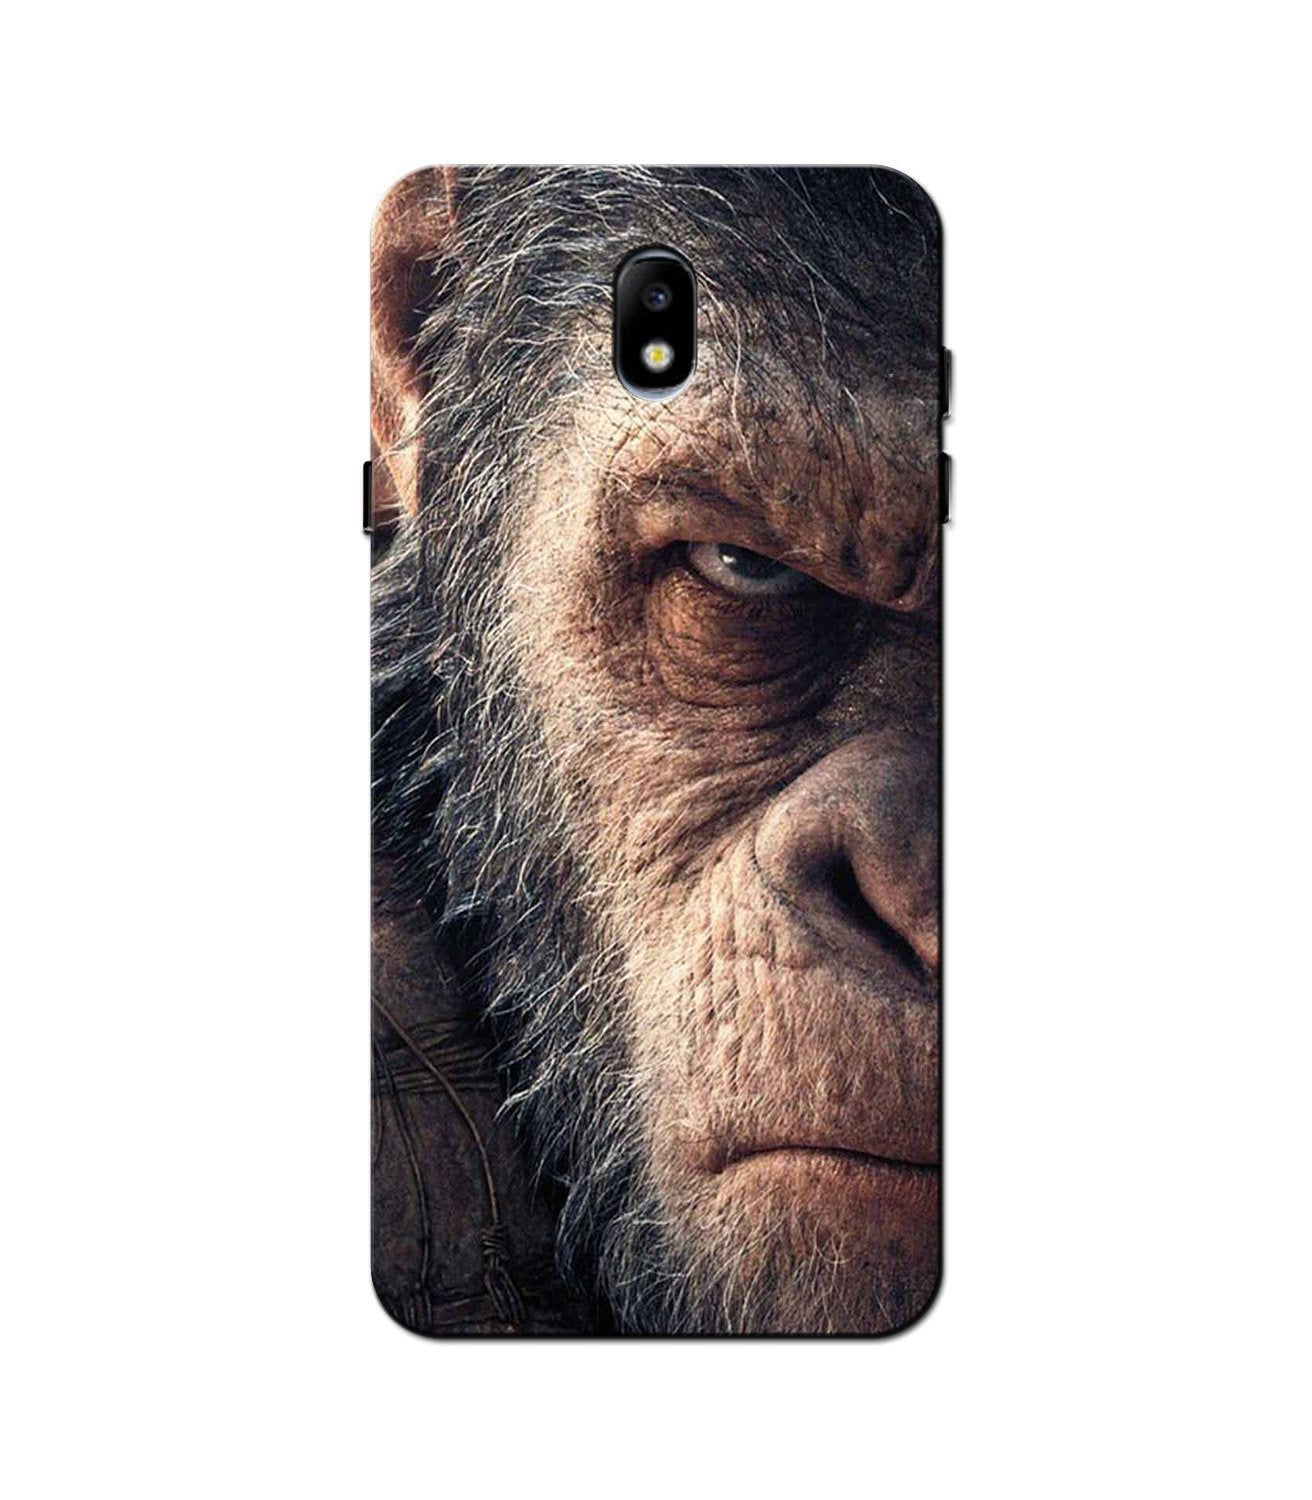 Angry Ape Mobile Back Case for Galaxy J3 Pro  (Design - 316)